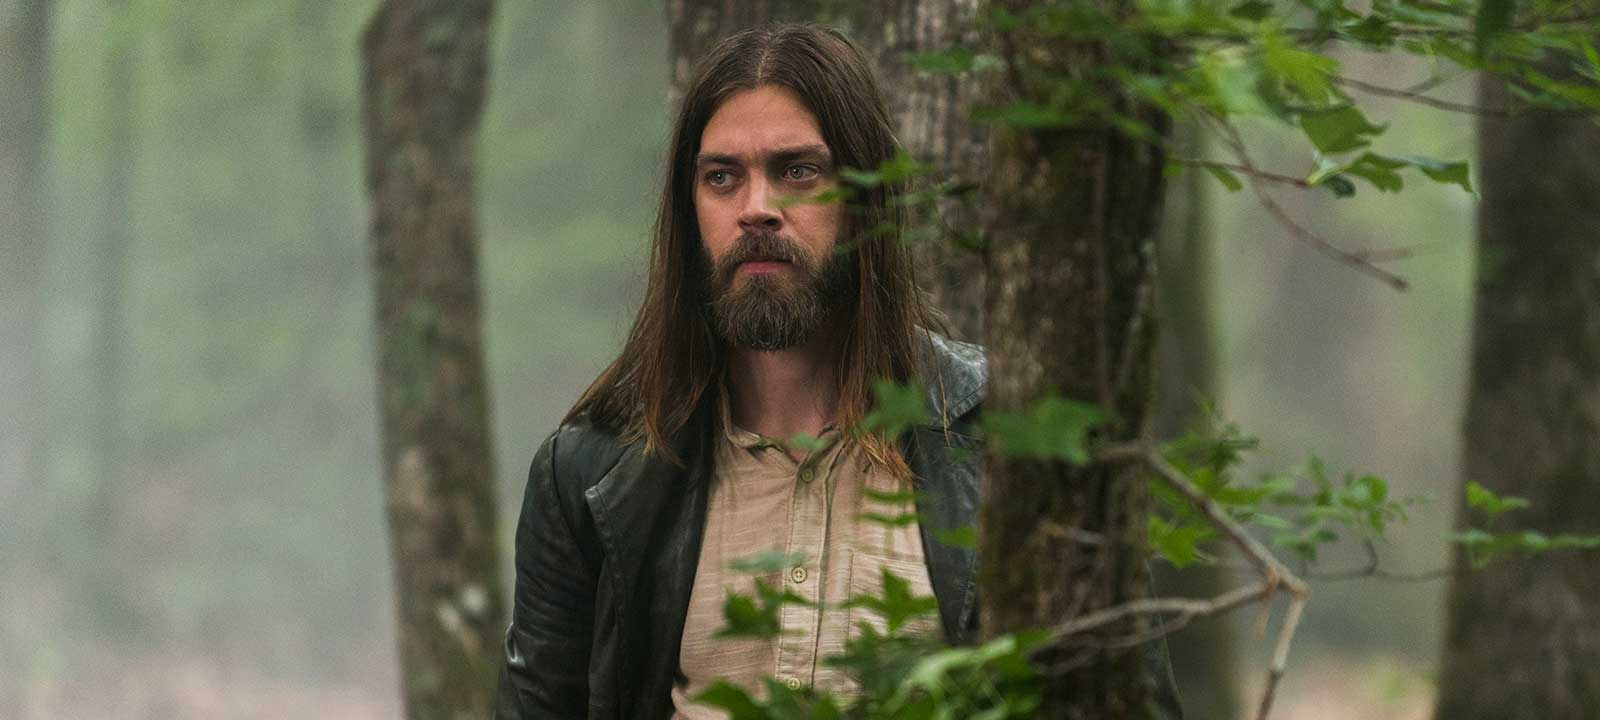 the-walking-dead-episode-803-jesus-payne-1200×707-interview